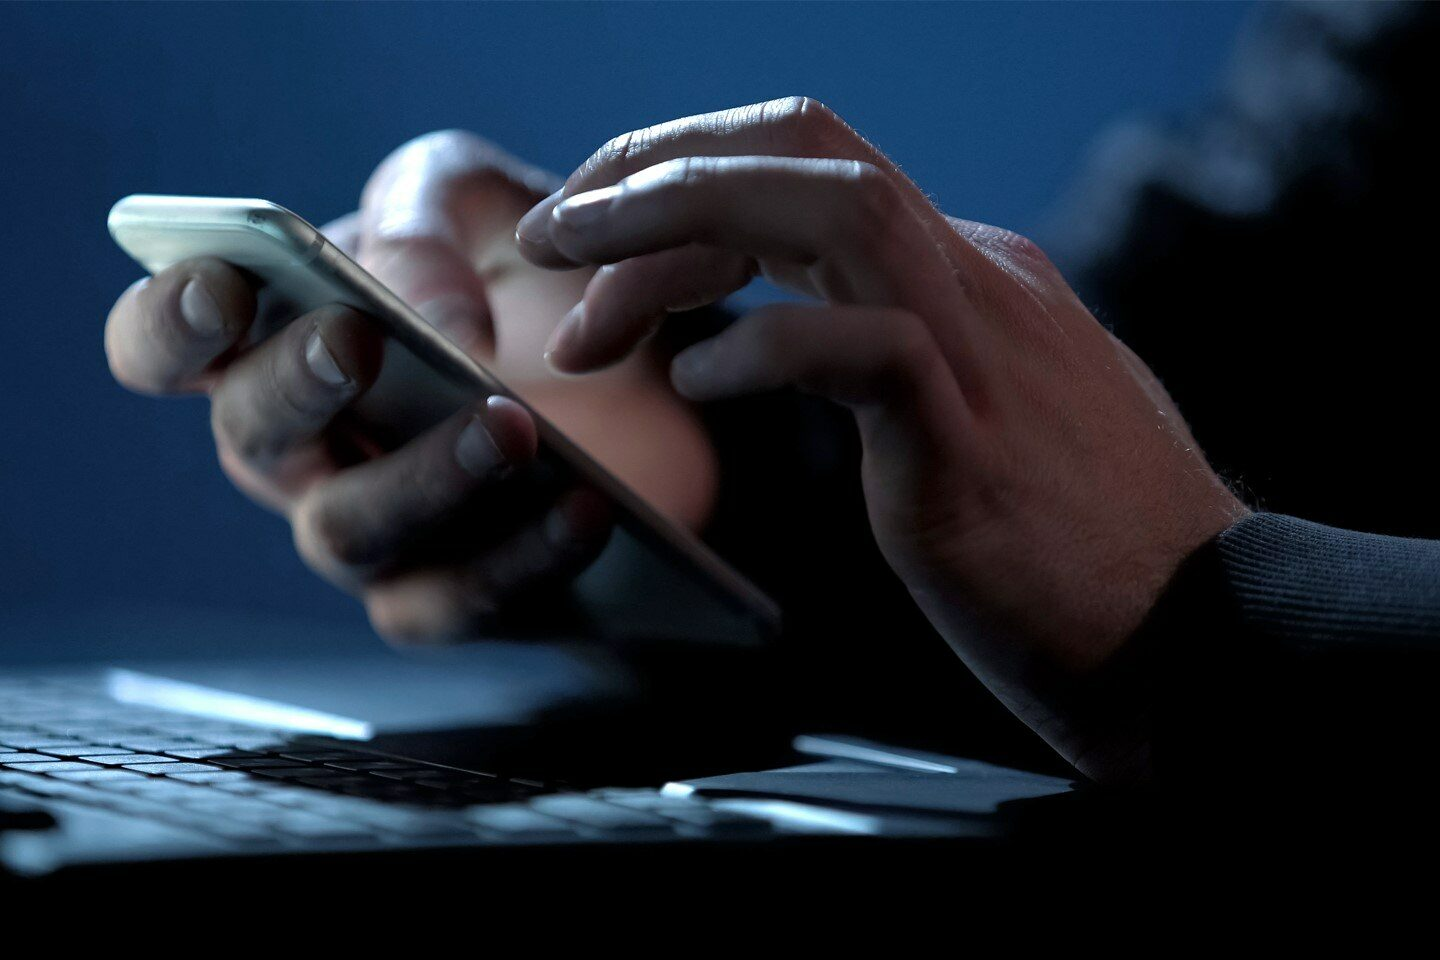 RS image teaser PR NAT-hands typing on mobile phone